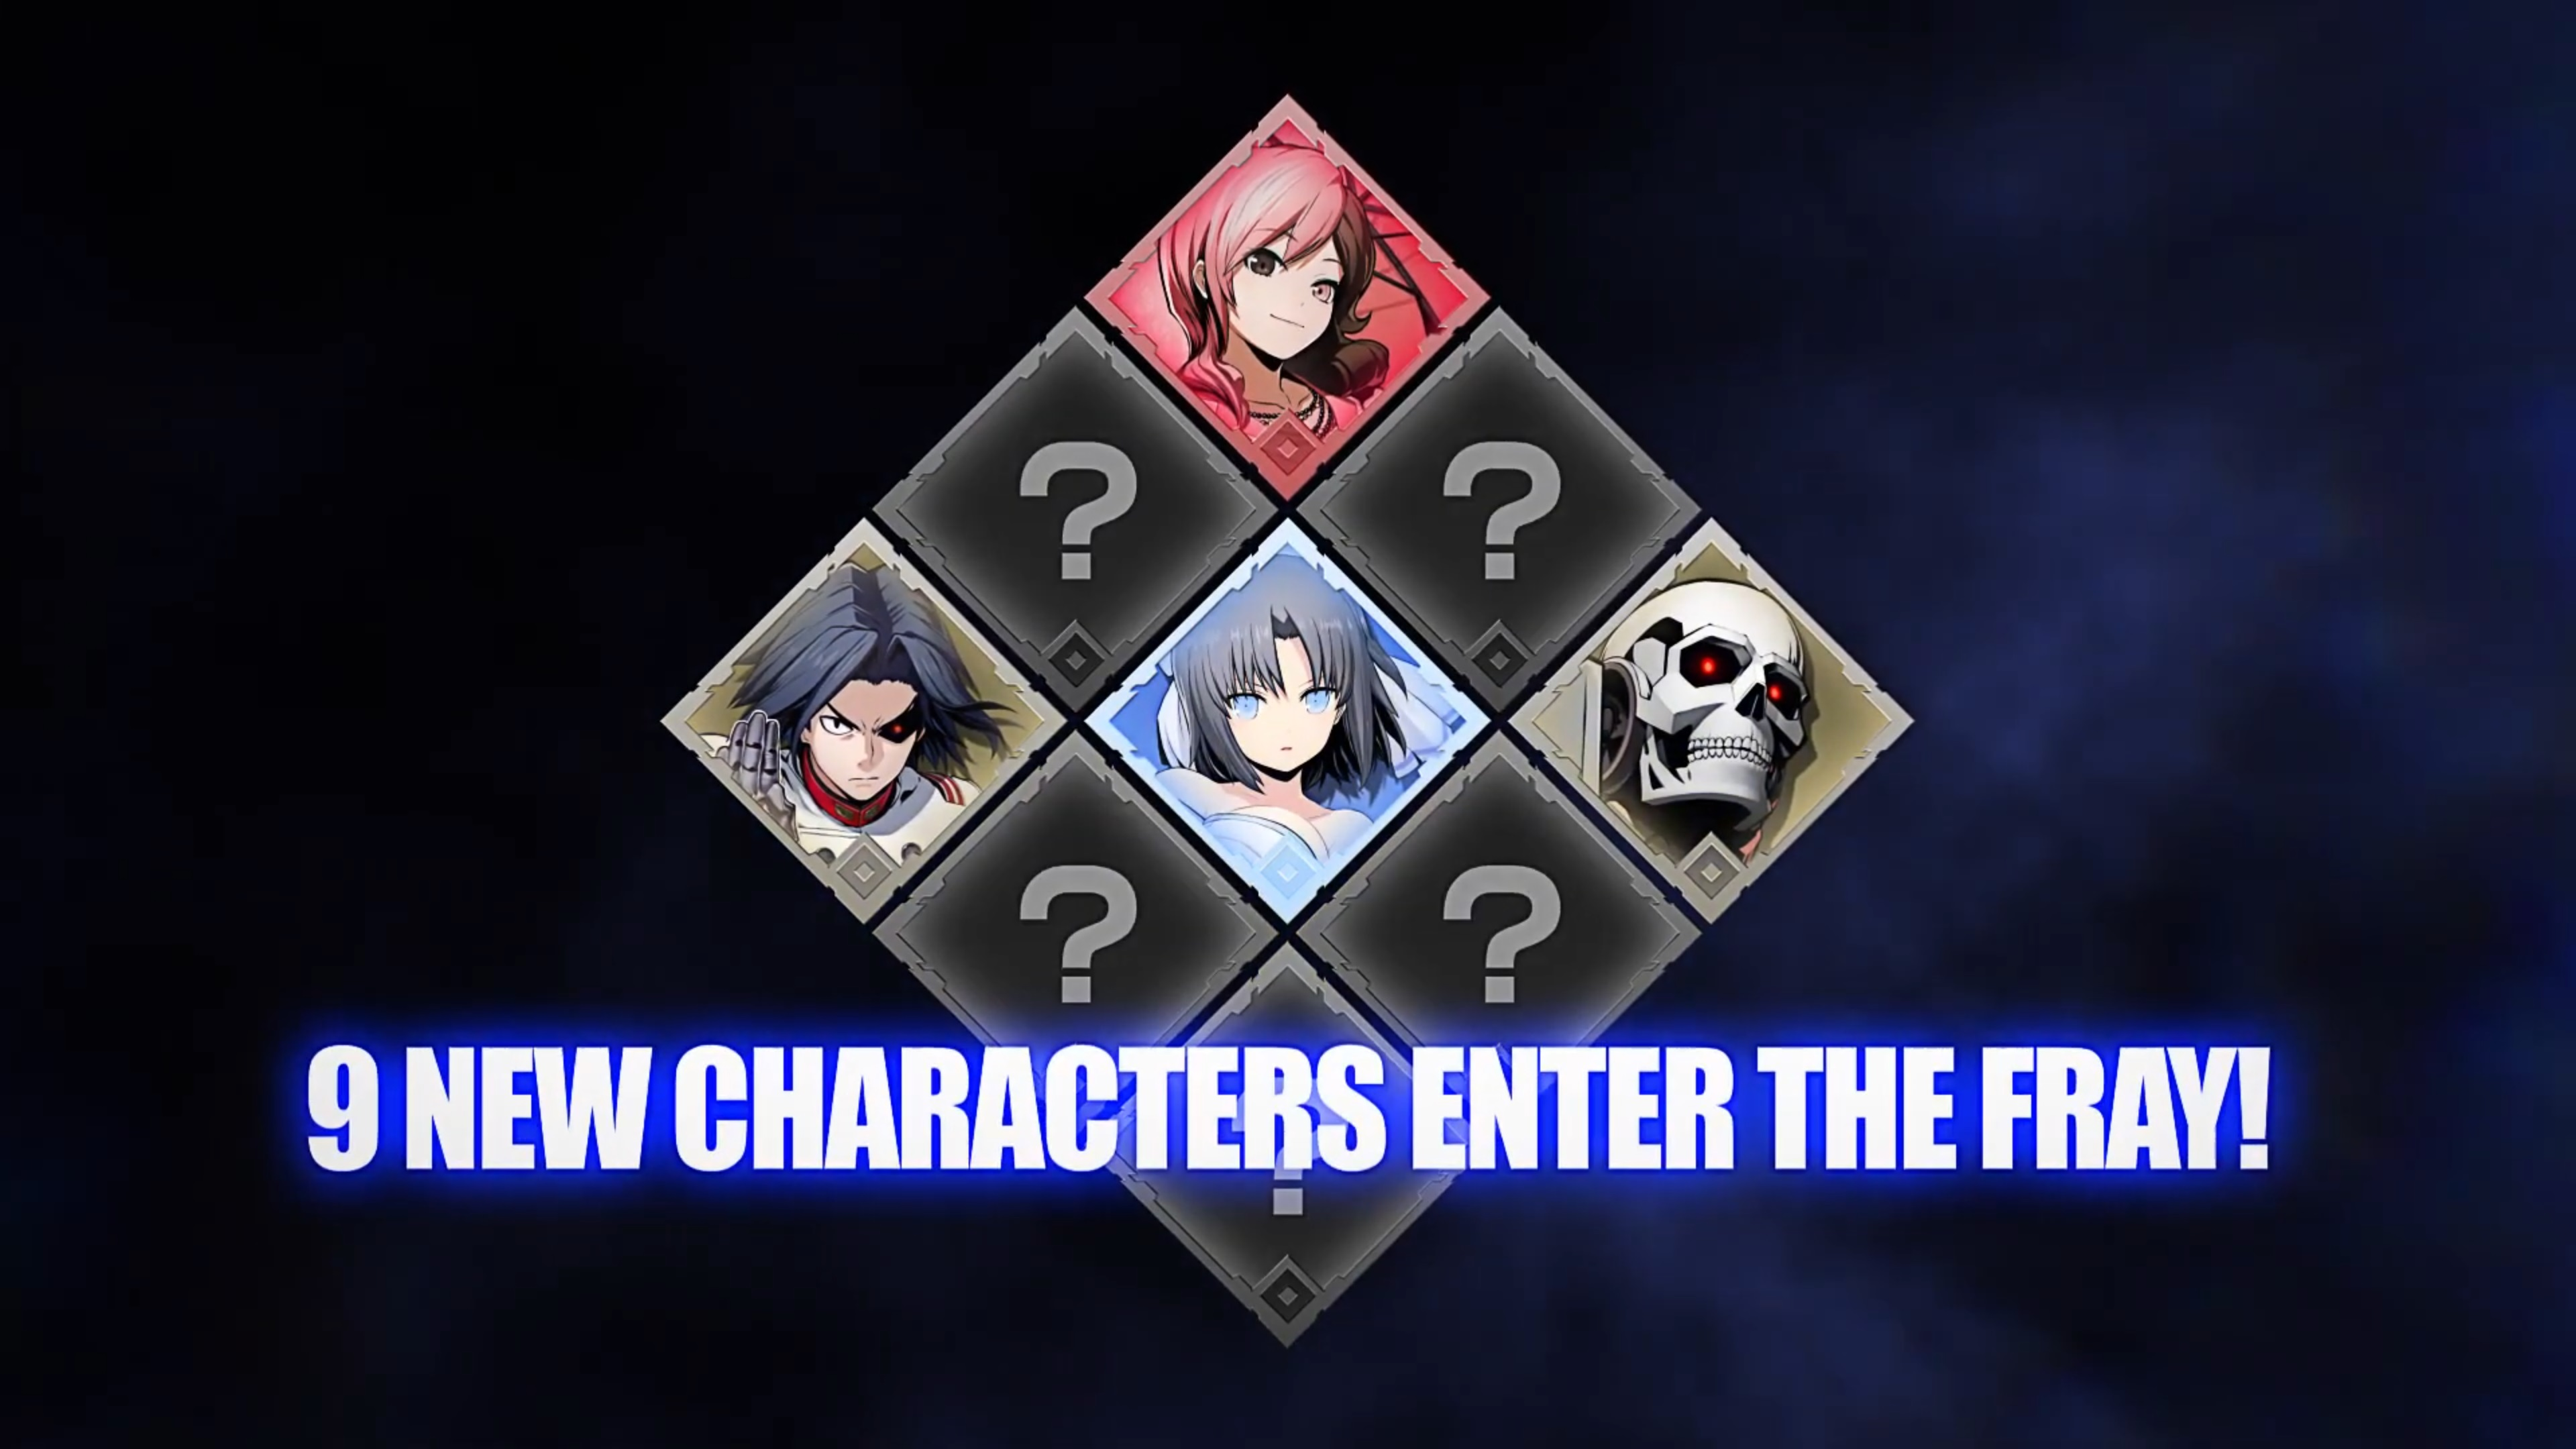 BlazBlue: Cross Tag Battle revealing remaining characters for upcoming DLC pack on September 22